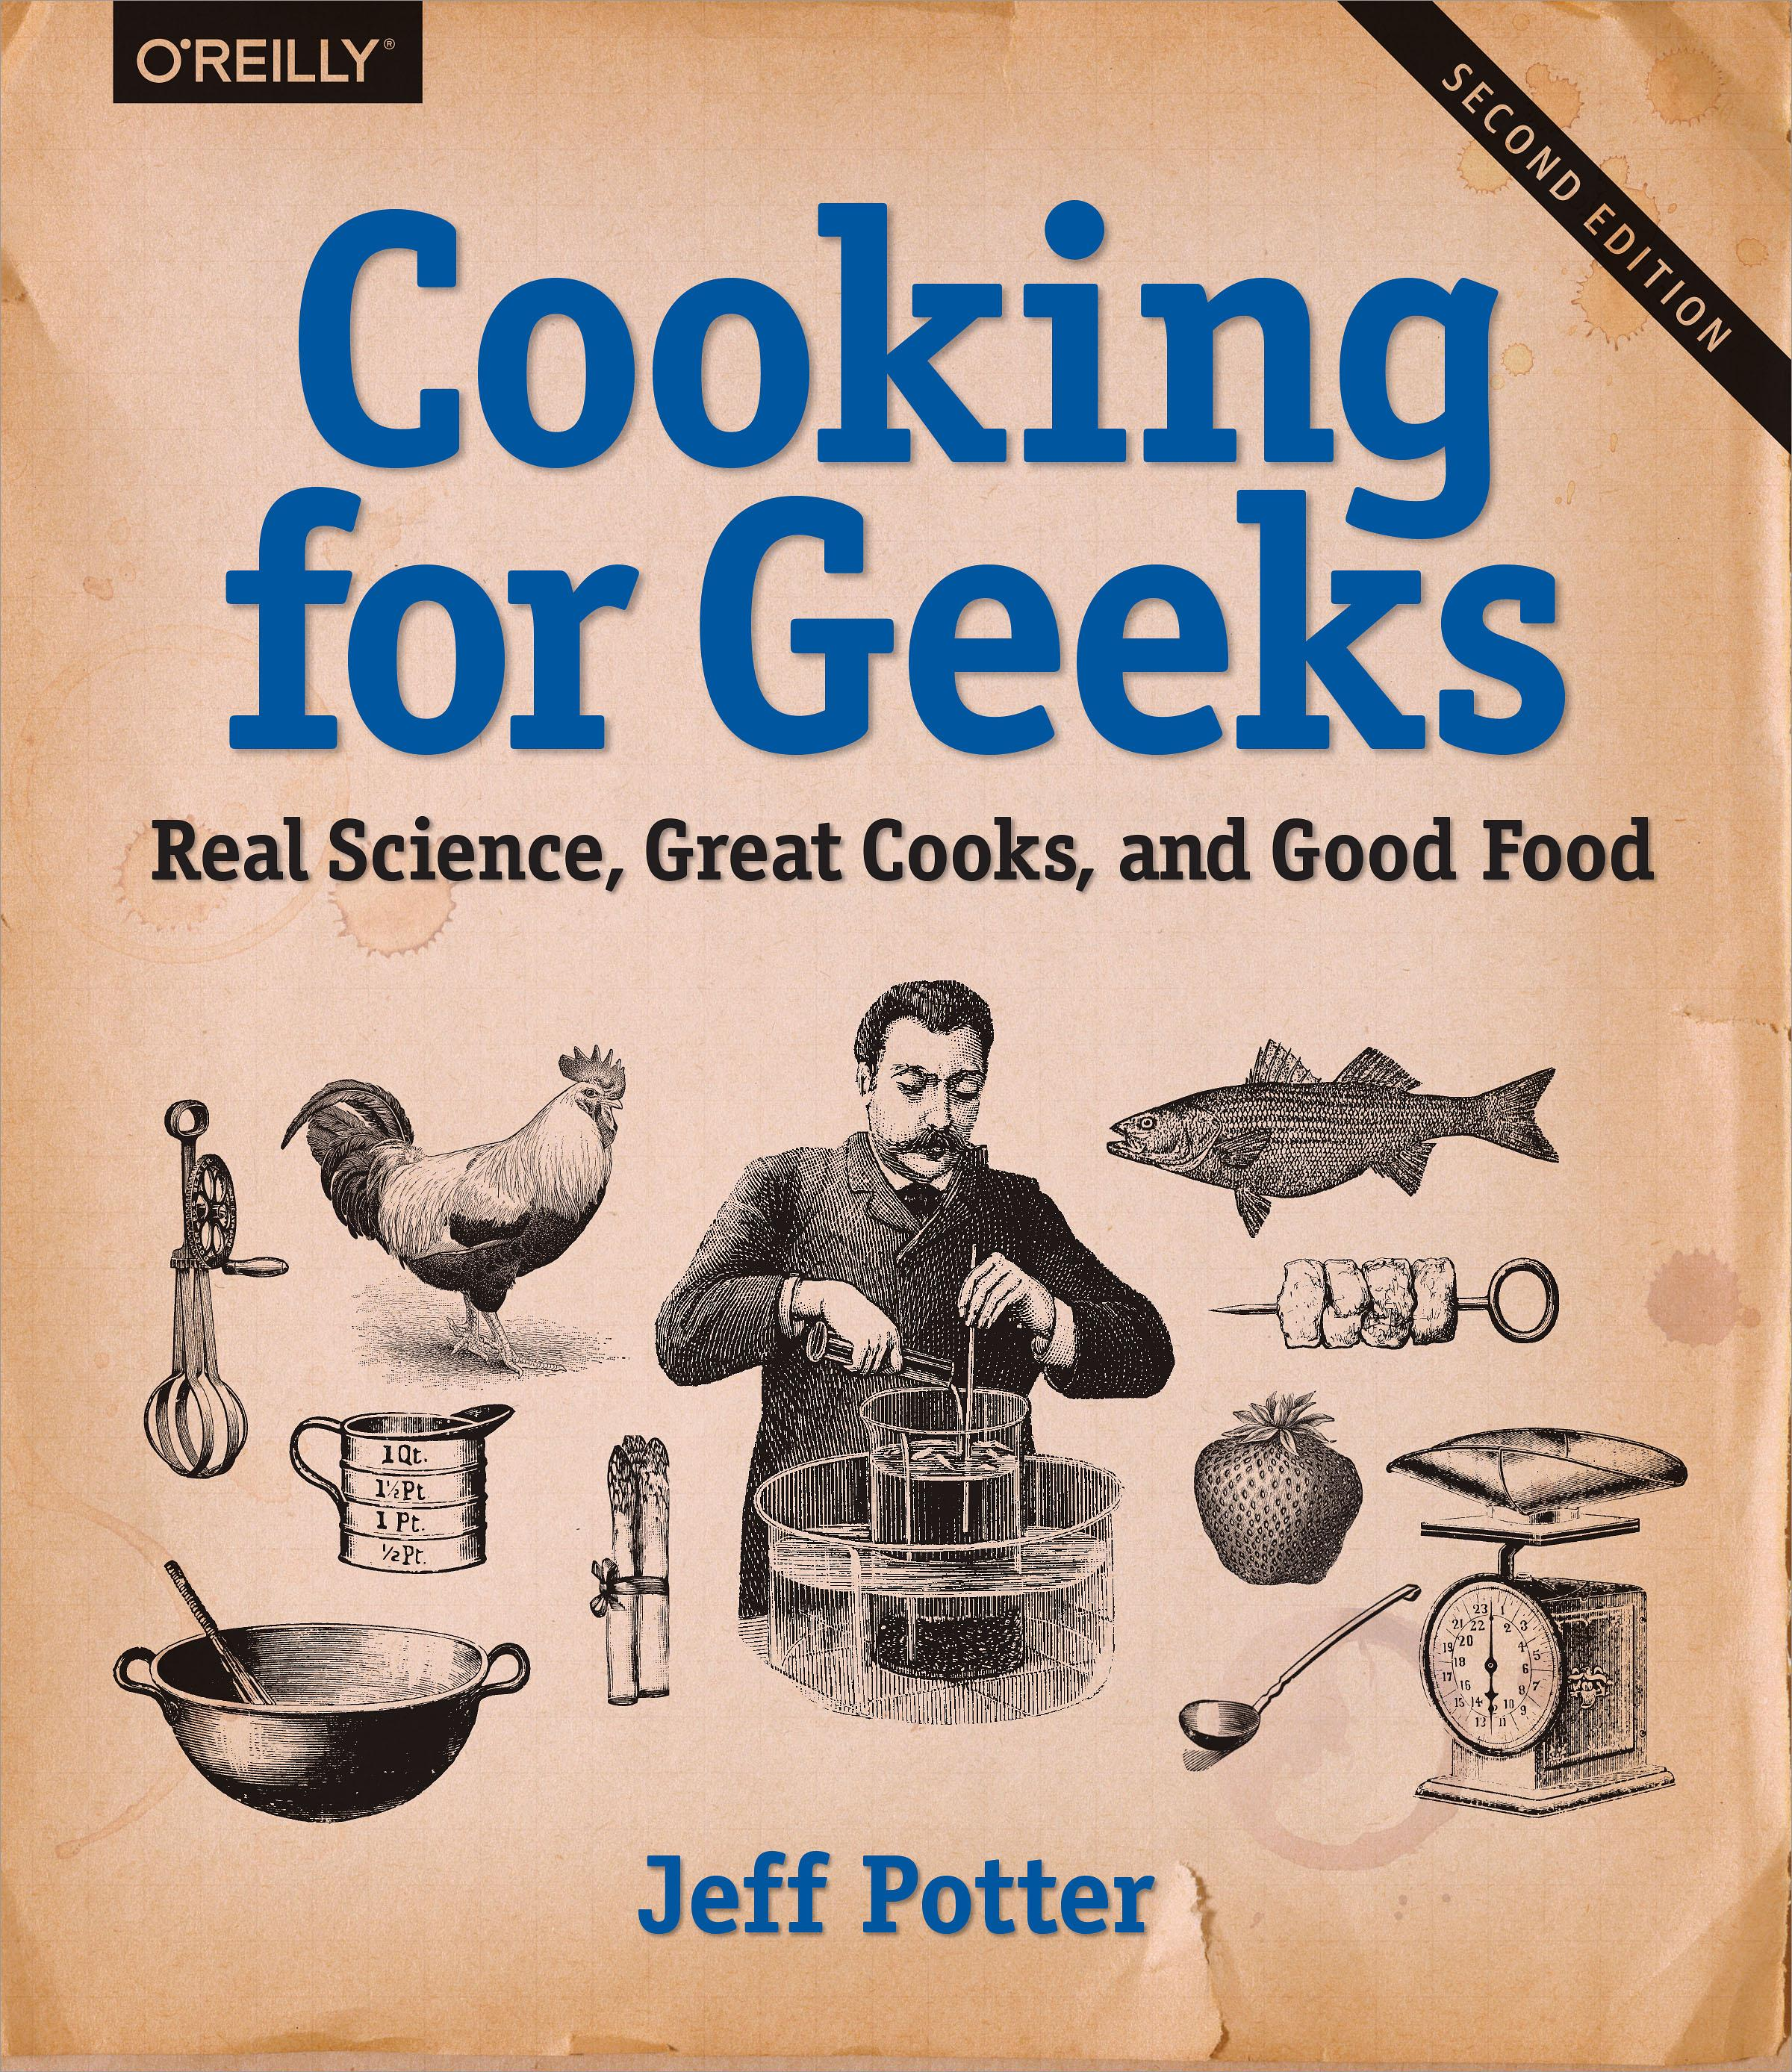 Cooking for Geeks: Real Science, Great Cooks, and Good Food by Jeff Potter, ISBN: 9781491928134